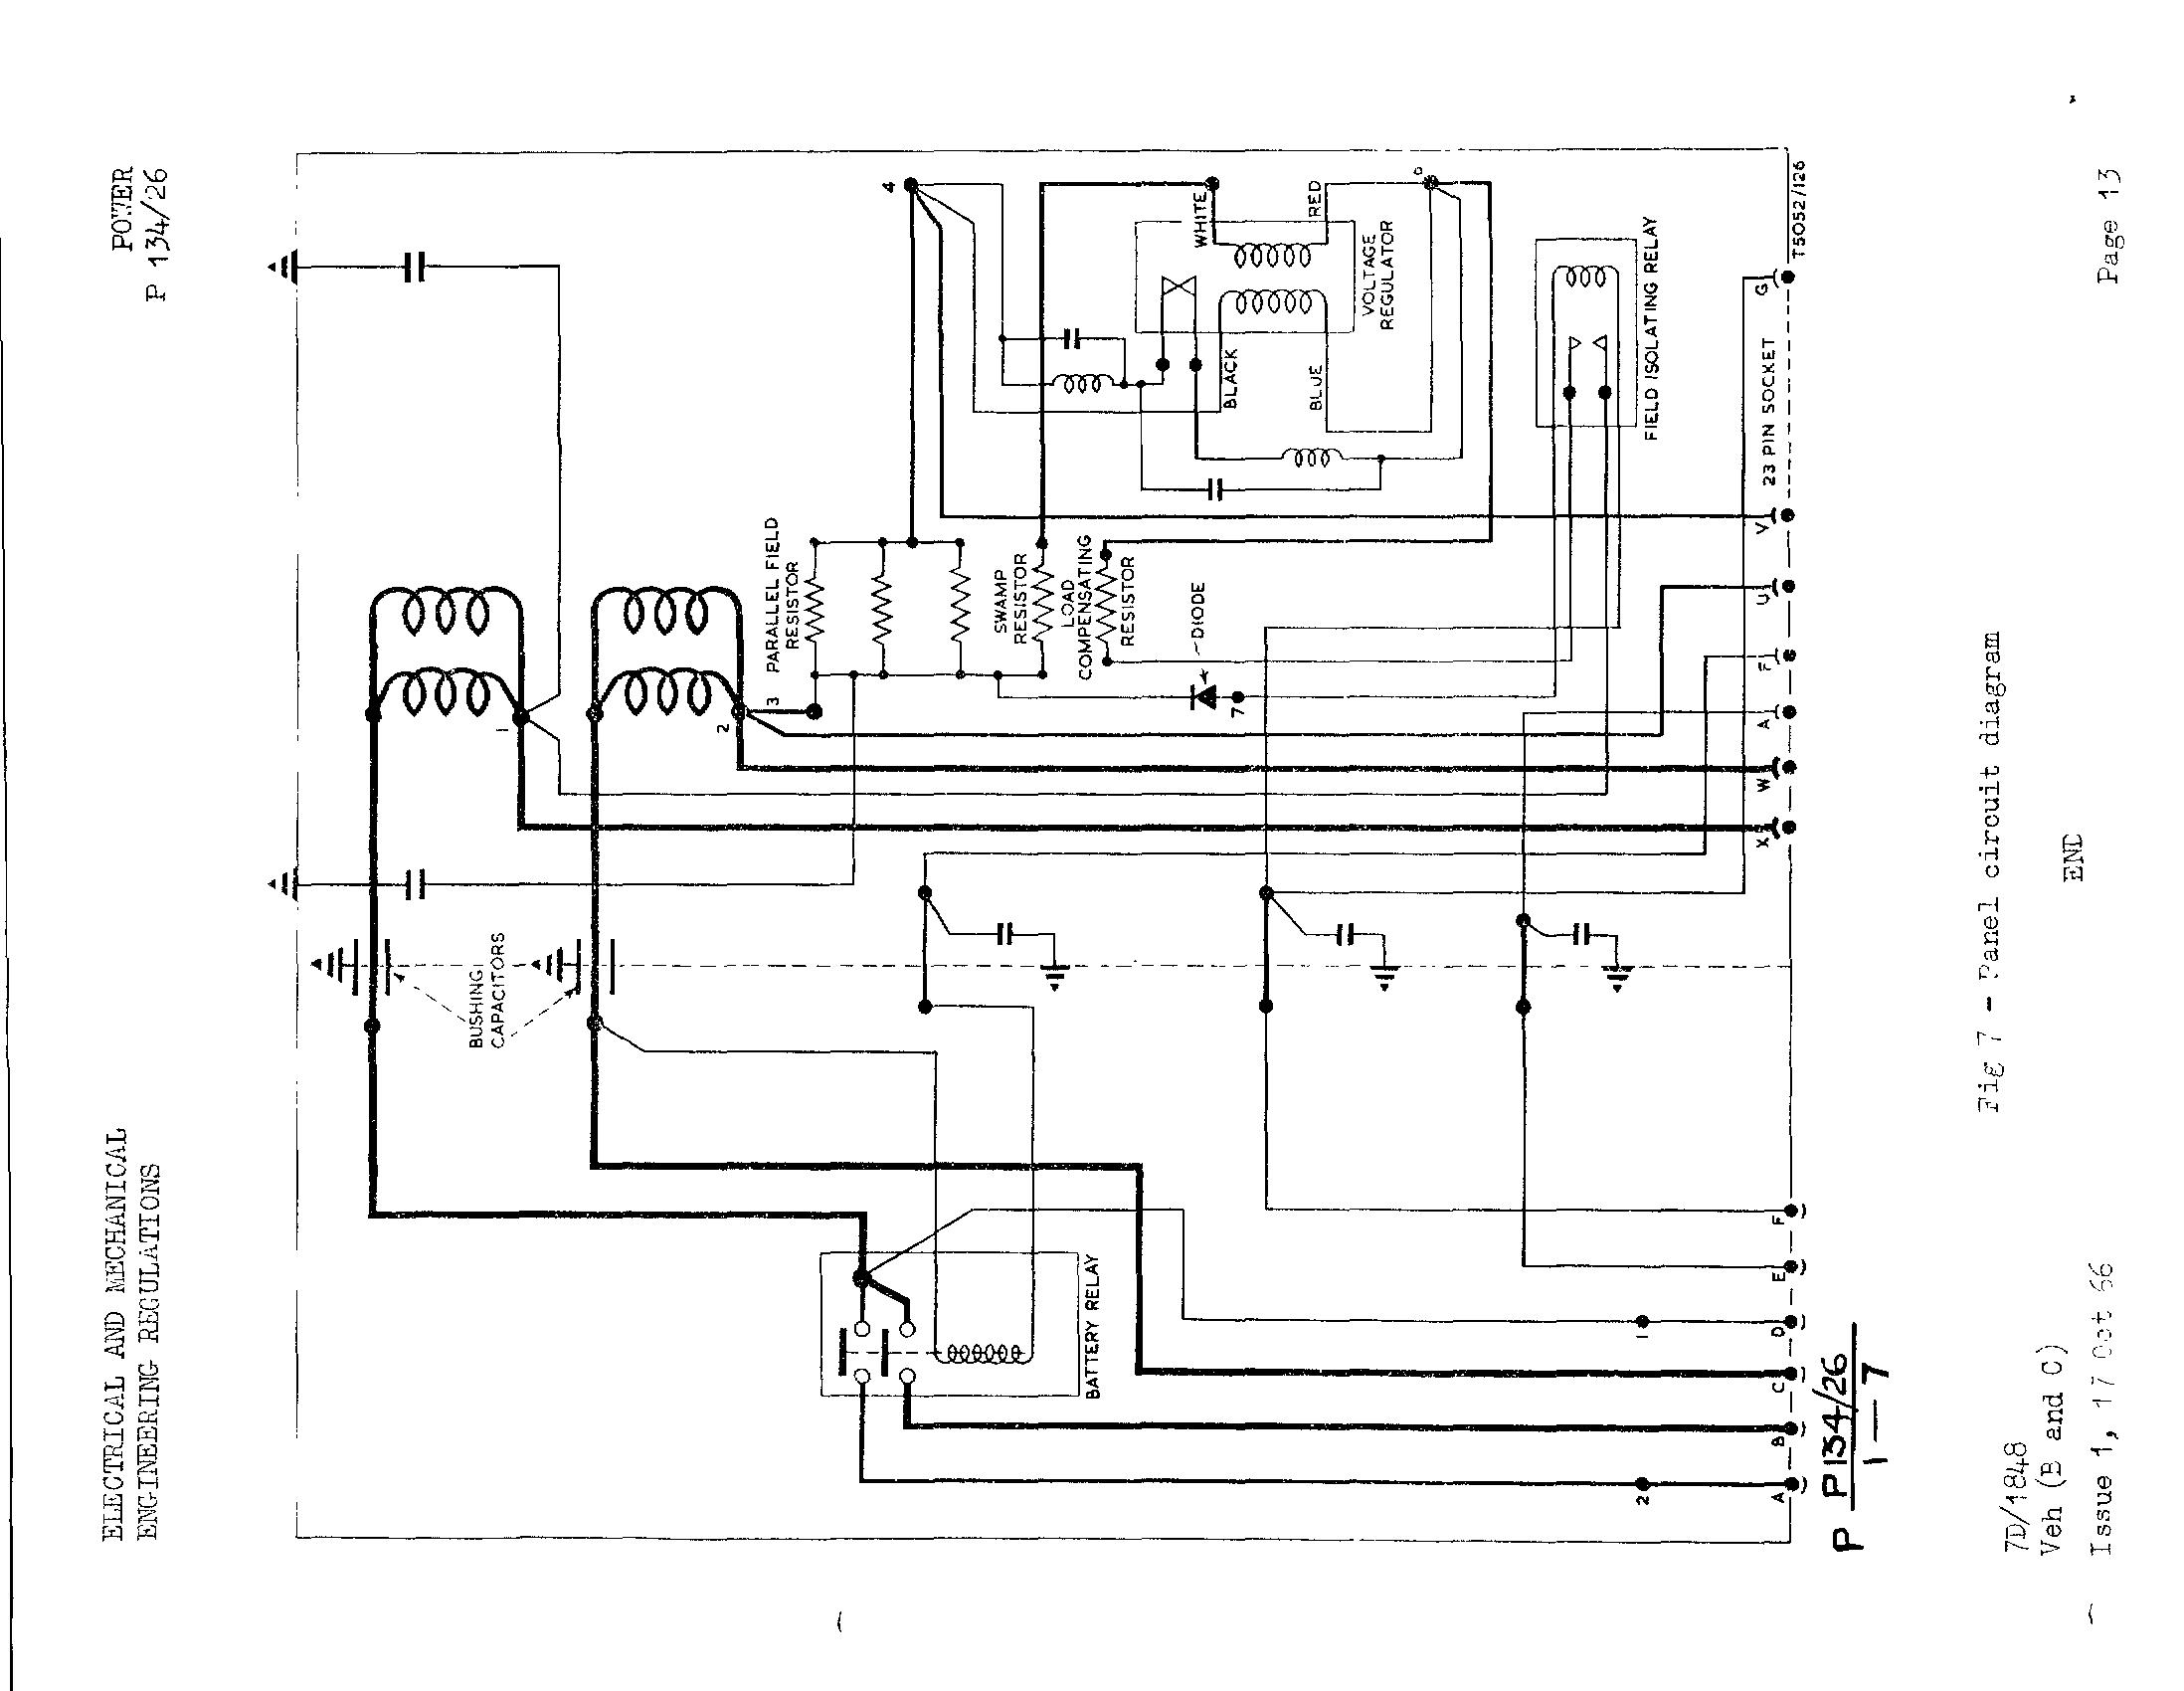 Nissan Sentra 2012 Fuse Box Diagram Wiring Library